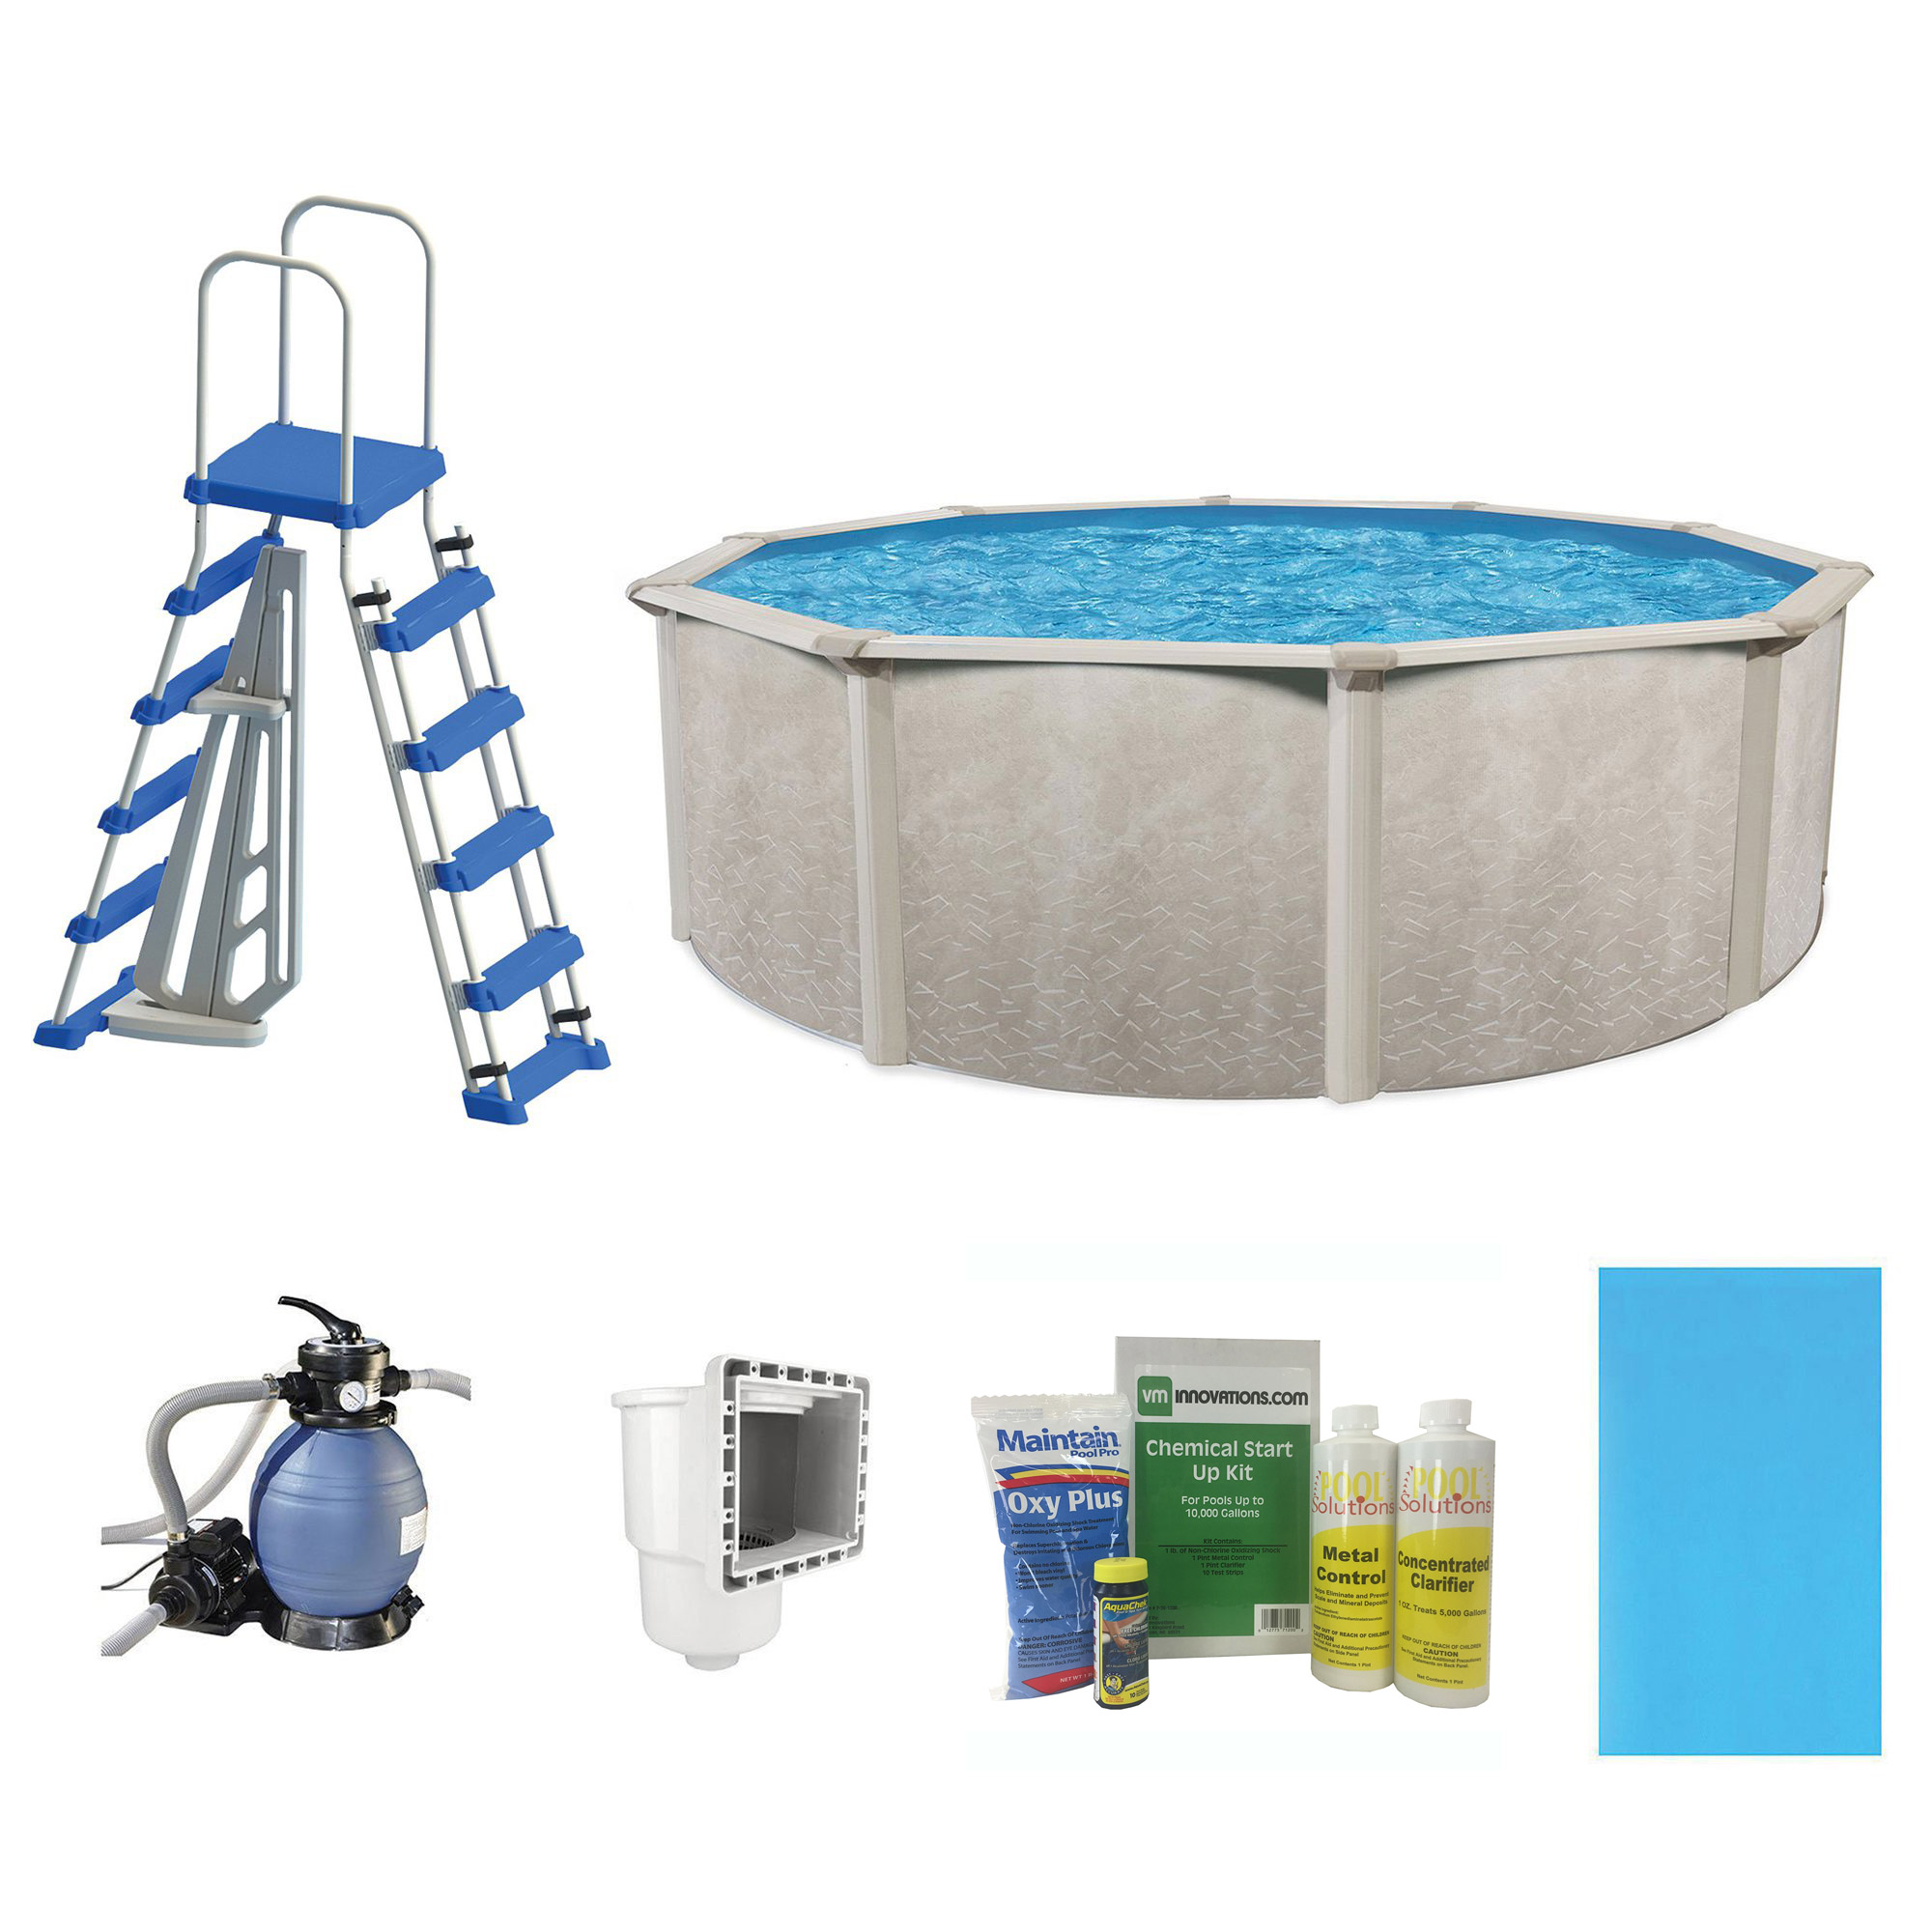 "Phoenix 18' x 52"" Steel Frame Above Ground Swimming Pool with Pump & Ladder Kit by Cornelius"